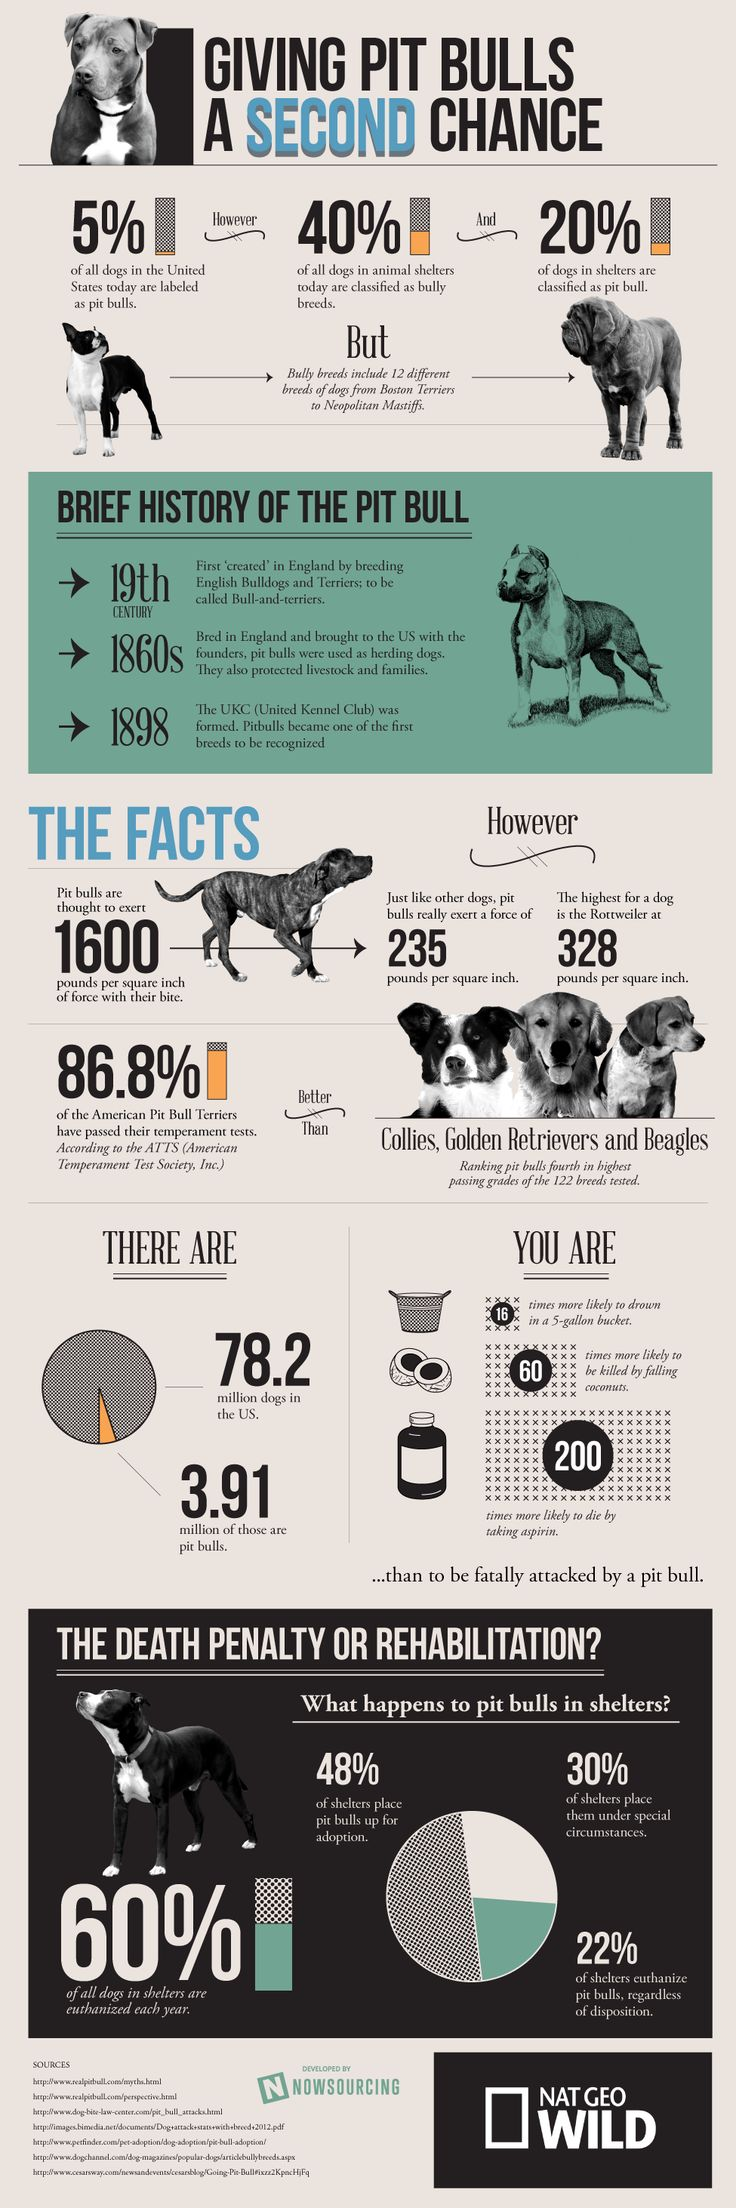 """""""This infographic provides a deeper look into the truth about the pit bull breed.""""  Where do you stand on this? ~ any bad dog, regardless of breed, starts with bad owners. Love my Pitt."""